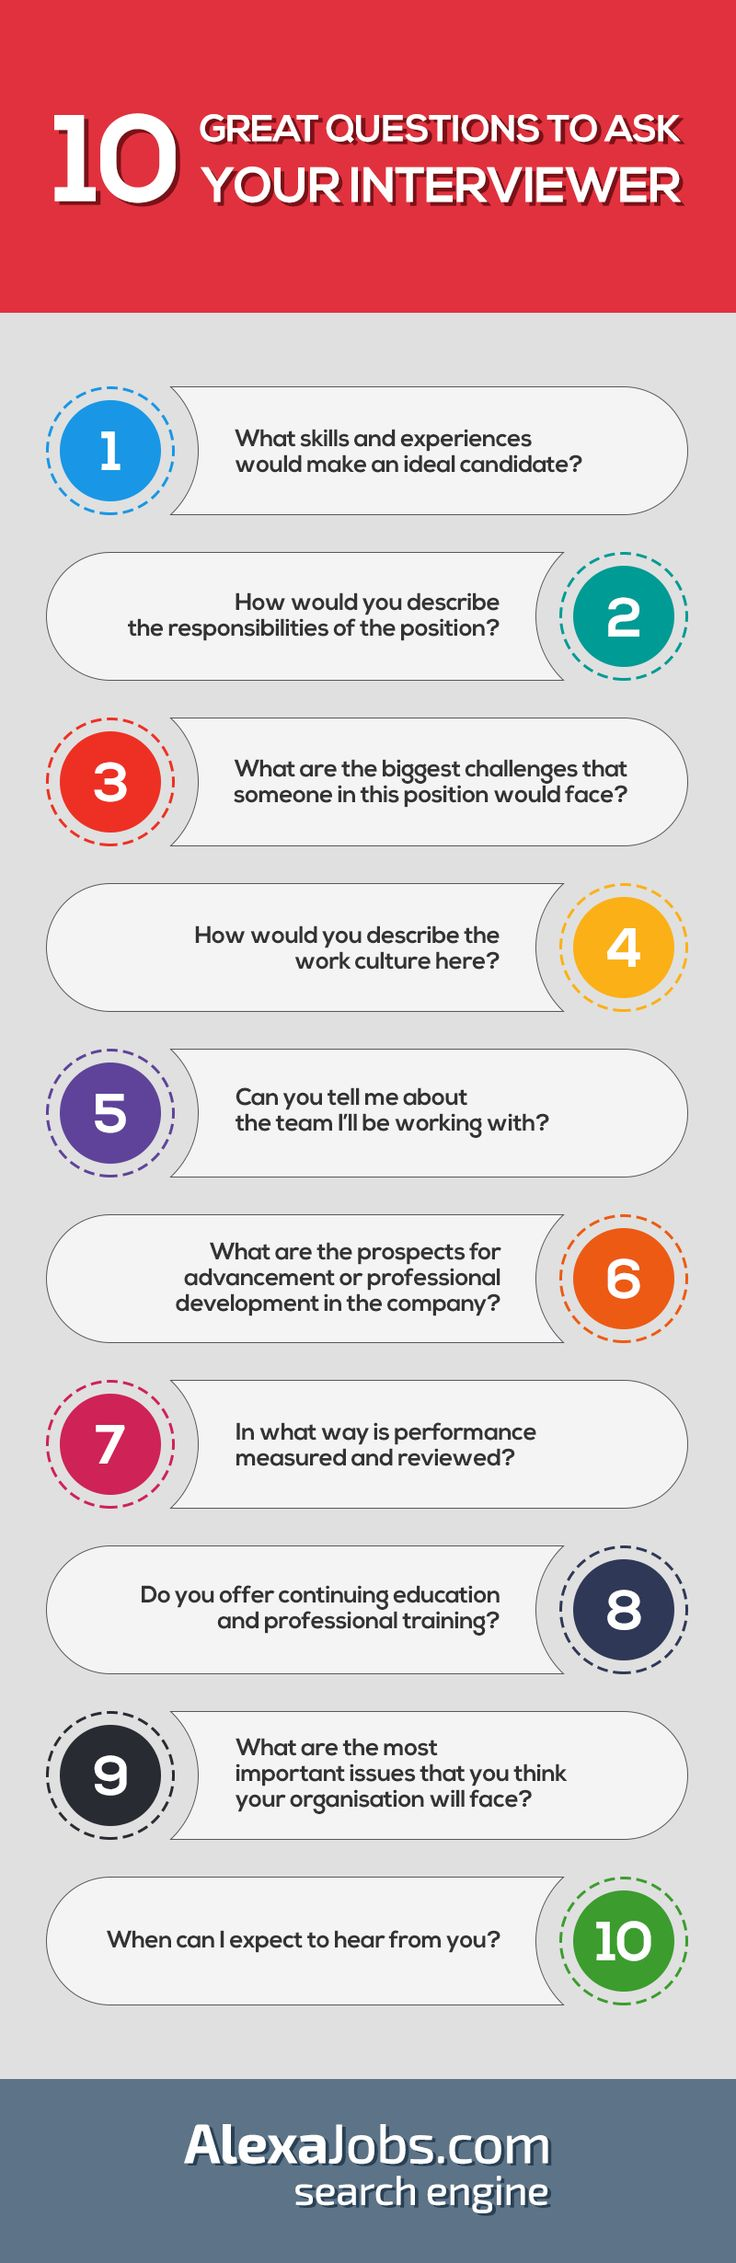 best ideas about interview questions for employers 10 great questions to ask your interviewer infographic often job interviews can feel like an interrogation but they re meant to be a conversation